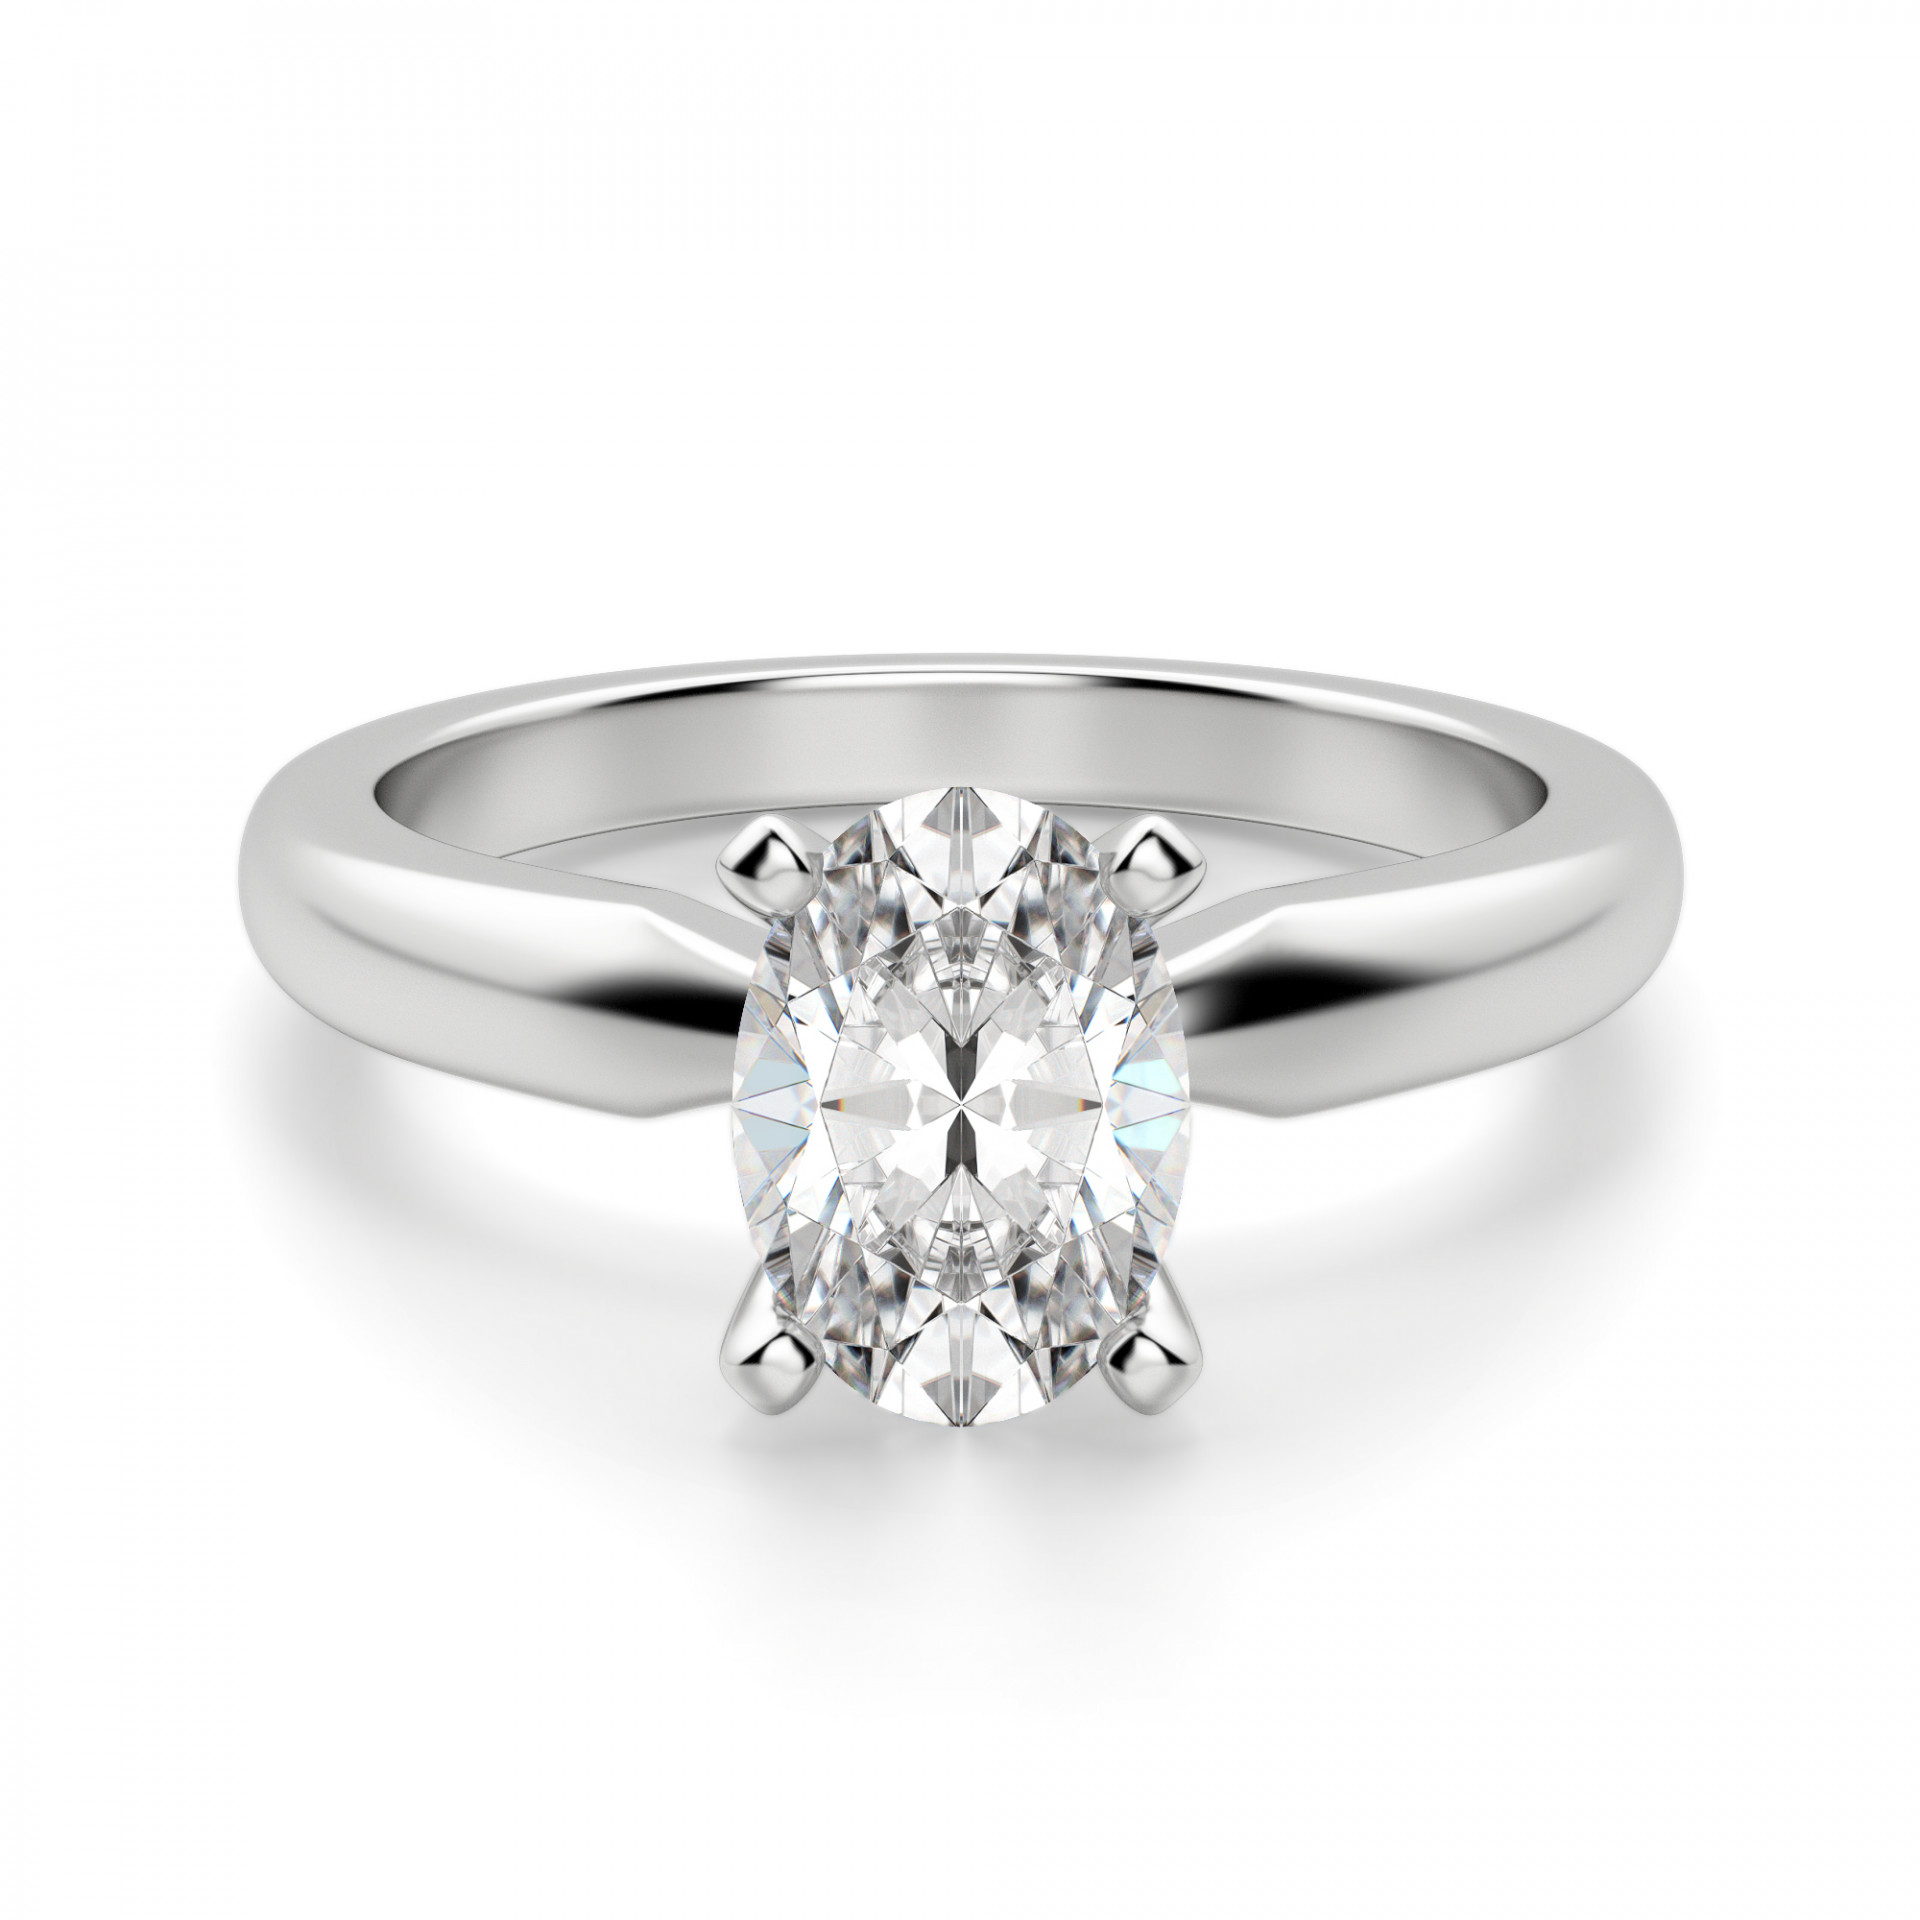 c642b1225d1eb Tiffany-Style Solitaire Oval Cut Engagement Ring